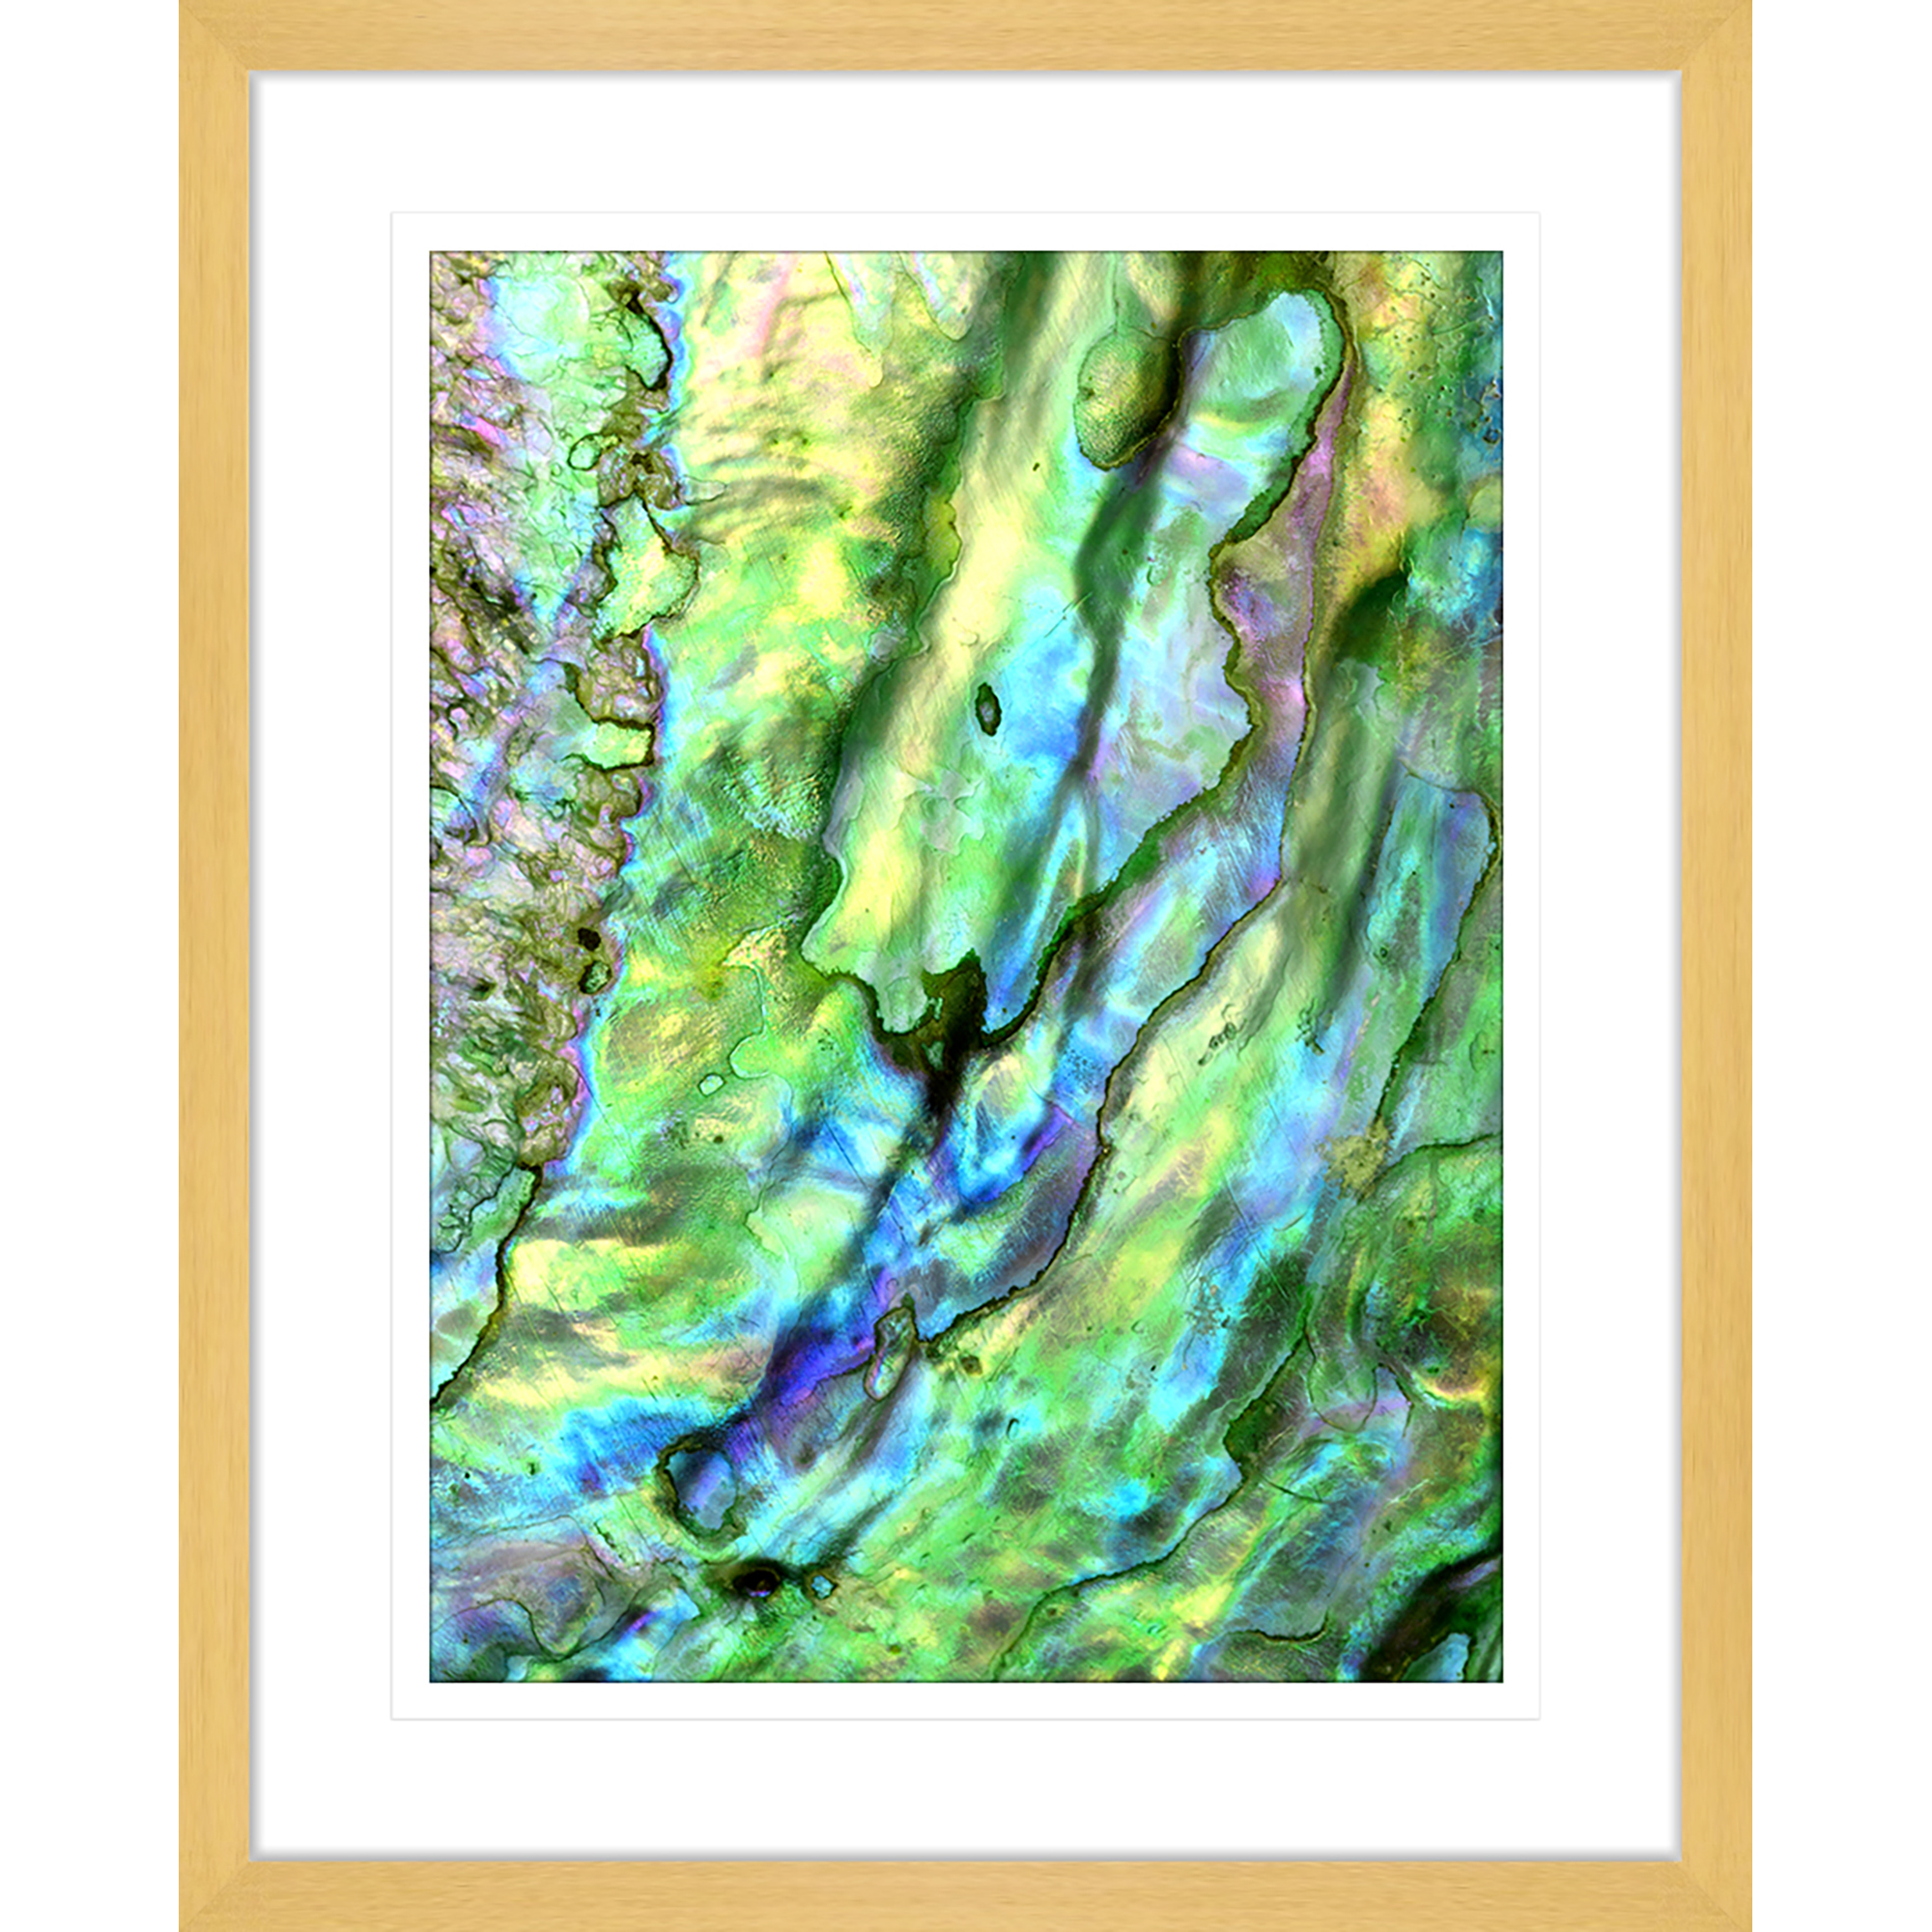 NEW-Pacific-Paua-II-Framed-Print-Innovate-Interiors-Wall-Art